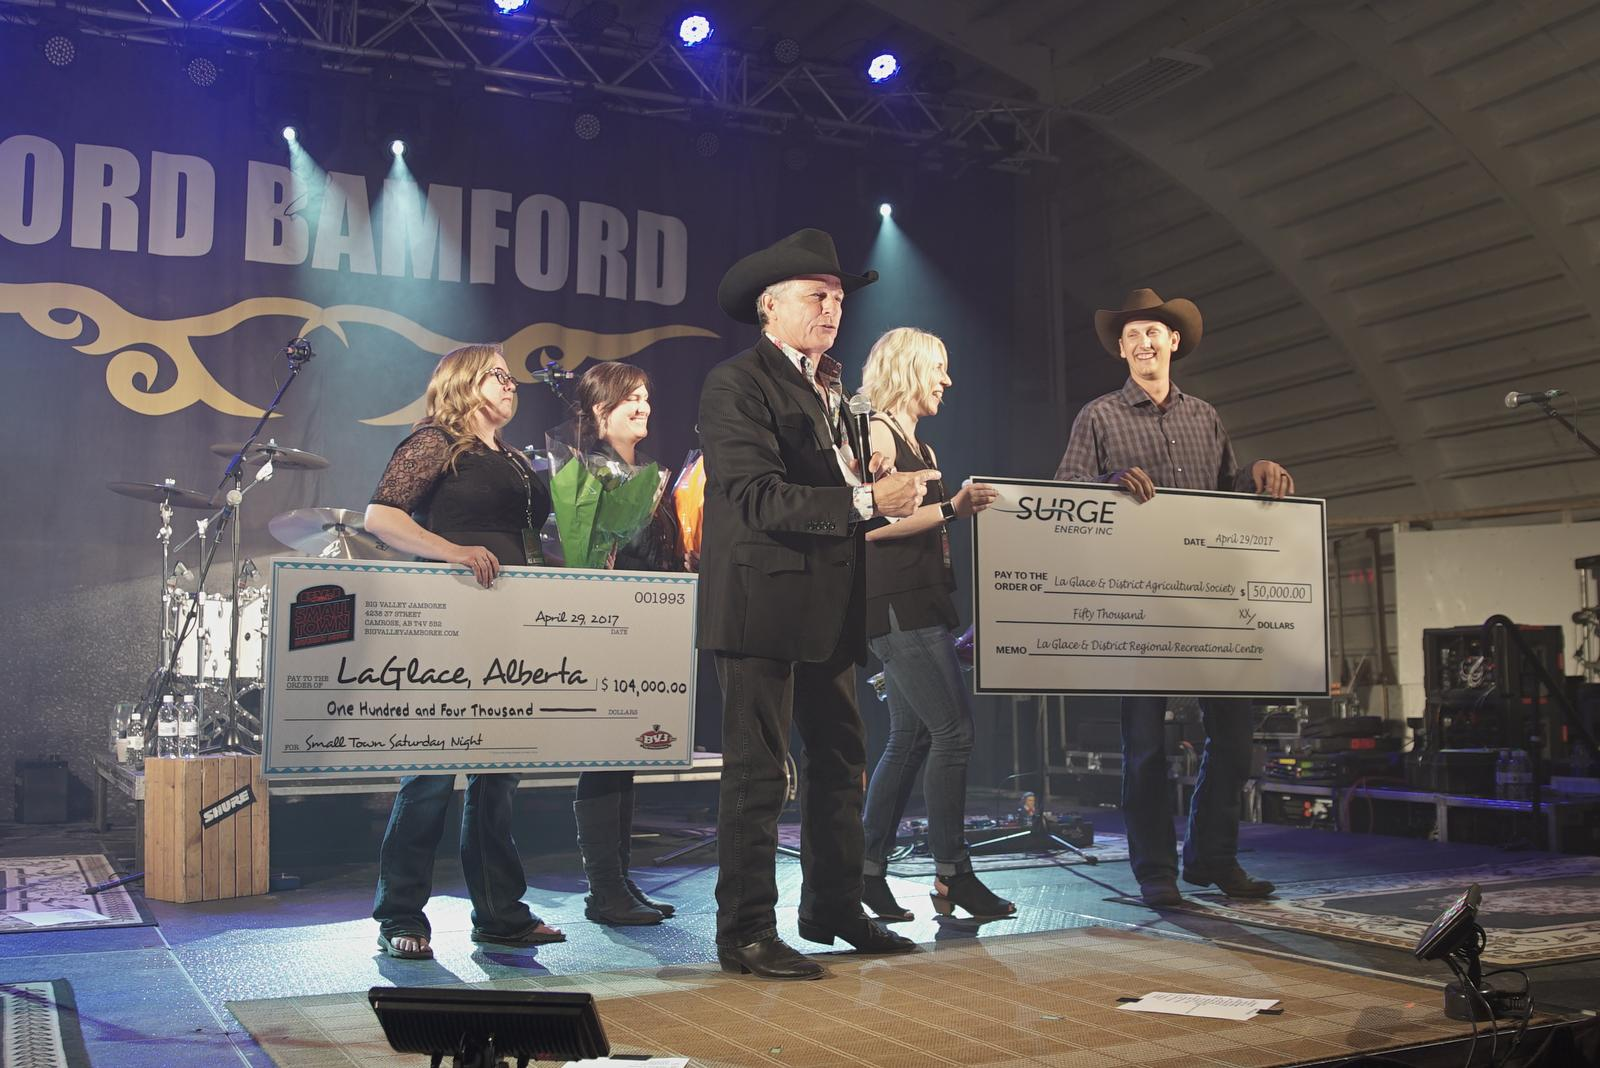 Small Town Saturday Night concert raises over $104,000